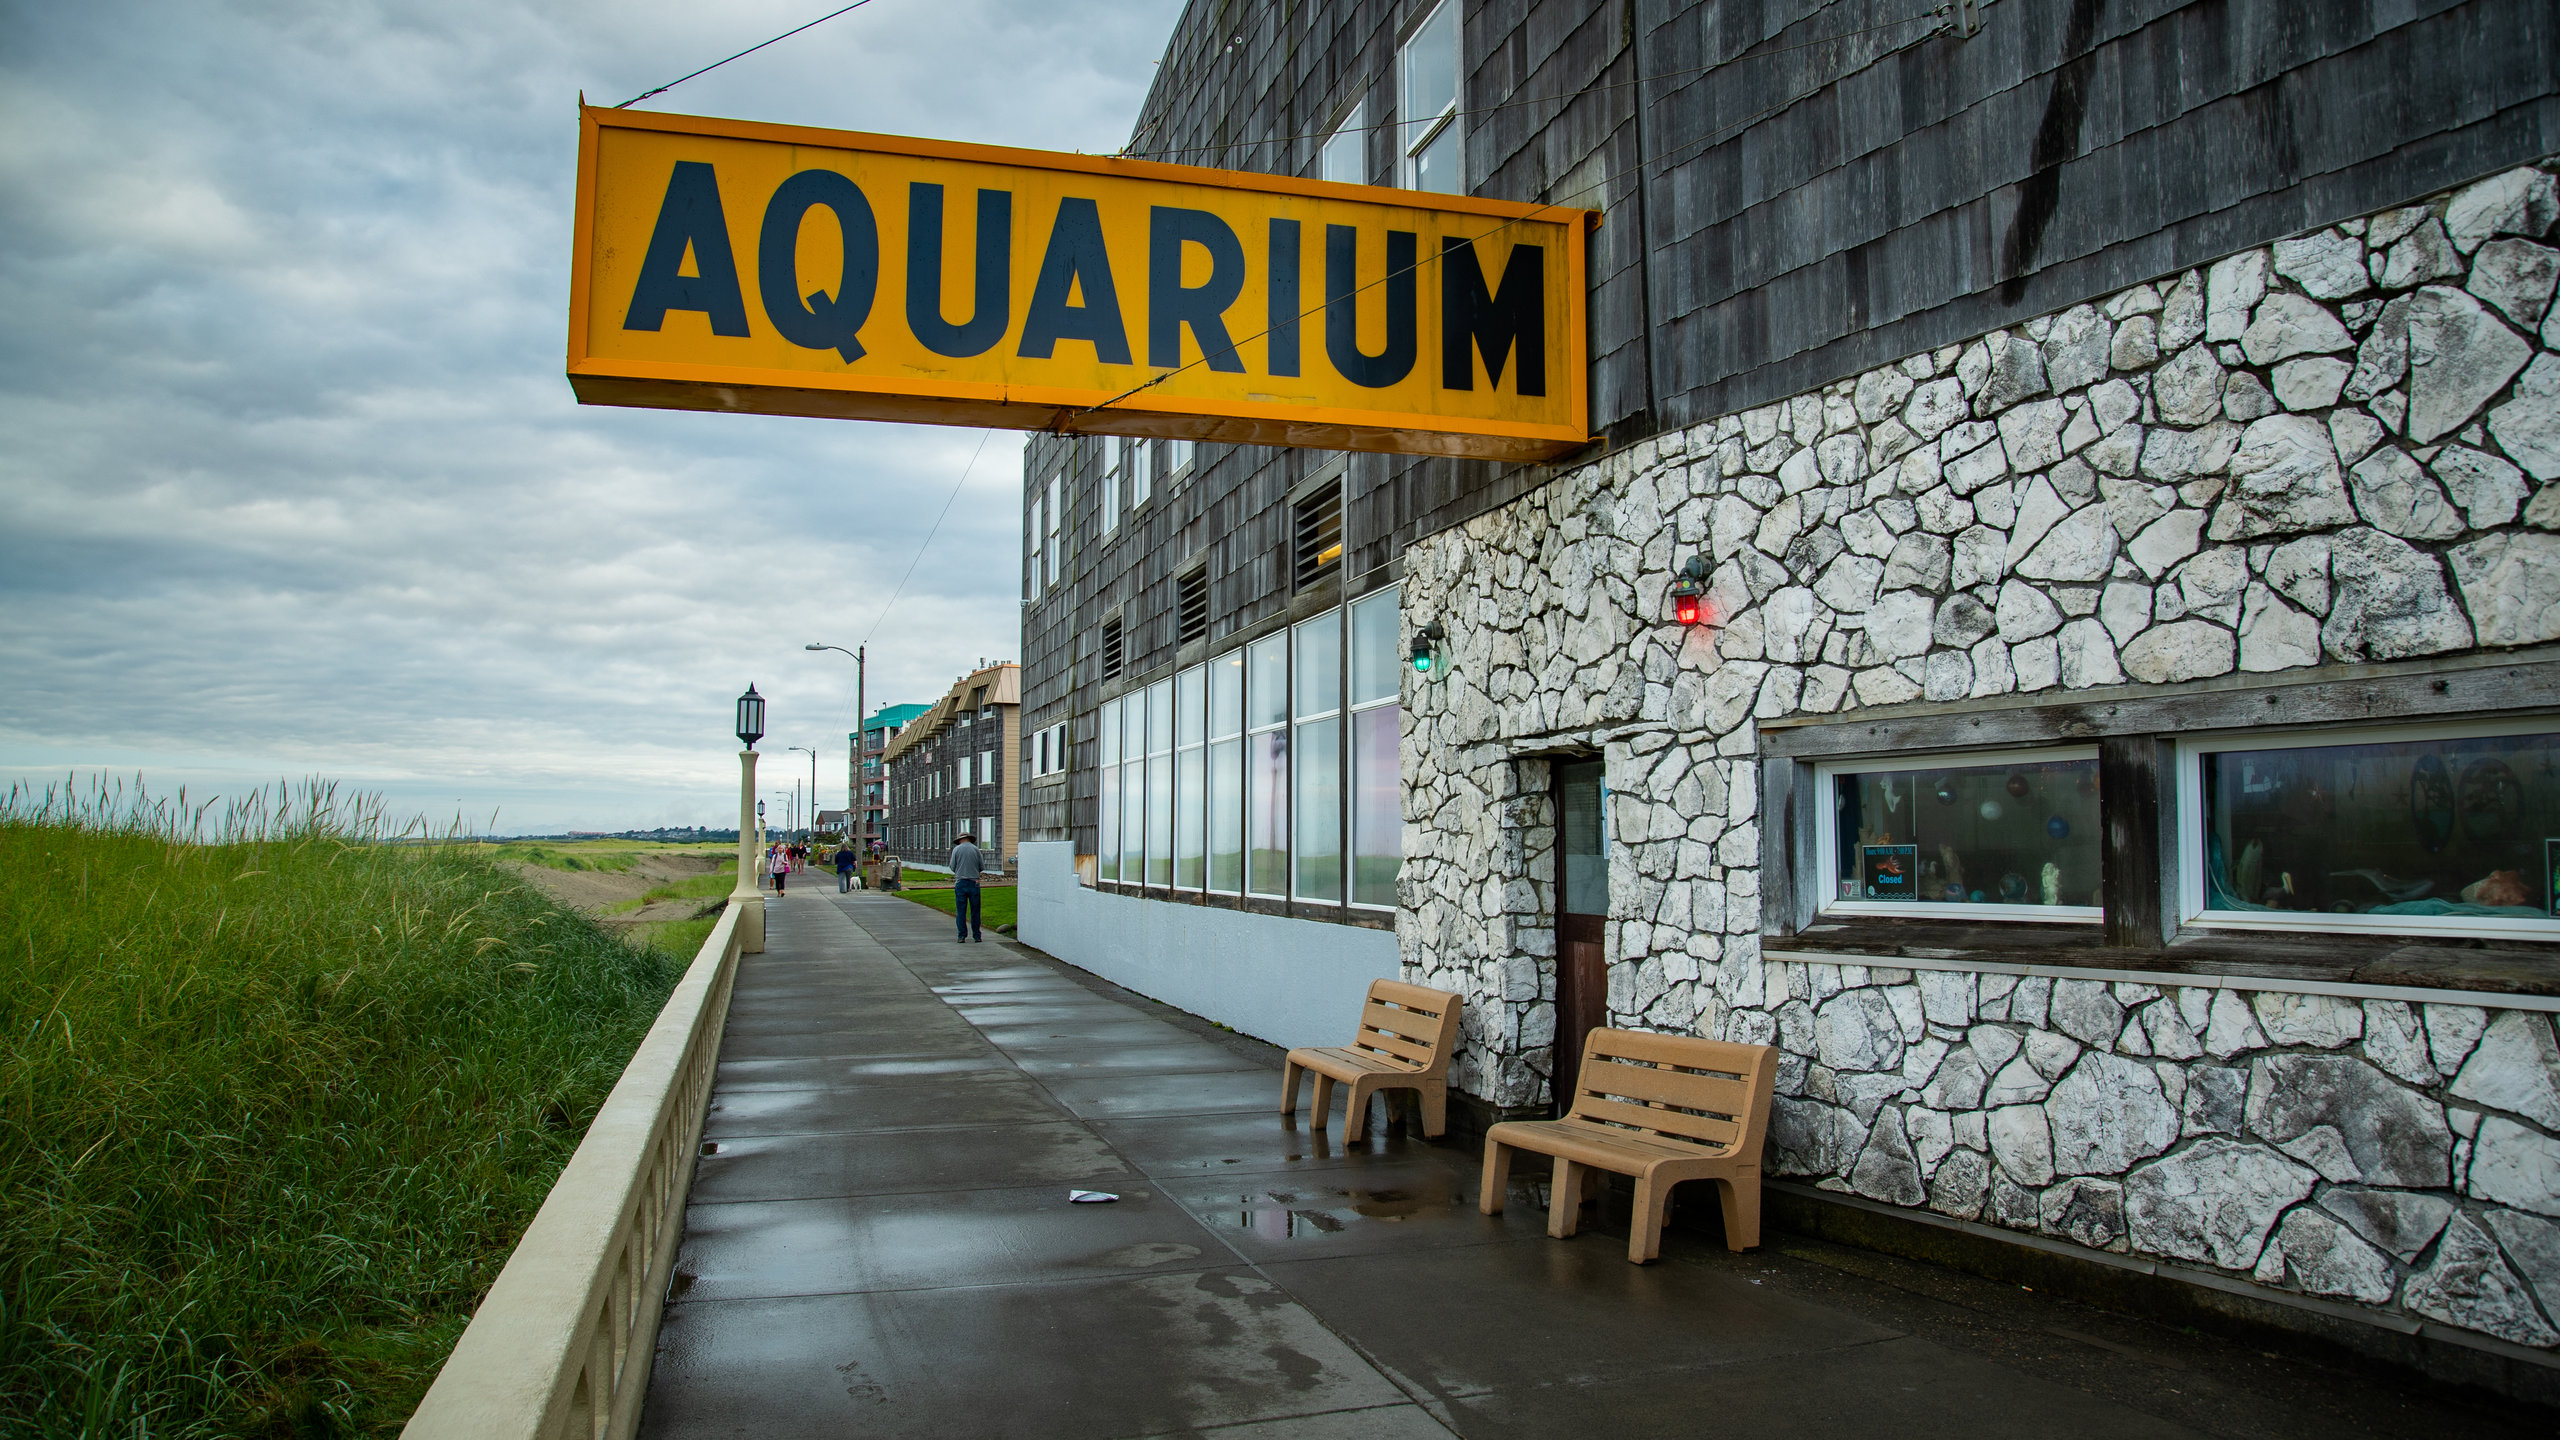 You can spend an afternoon studying the exhibits at Seaside Aquarium during your trip to Seaside. Wander the beautiful beaches and seaside in this family-friendly area.